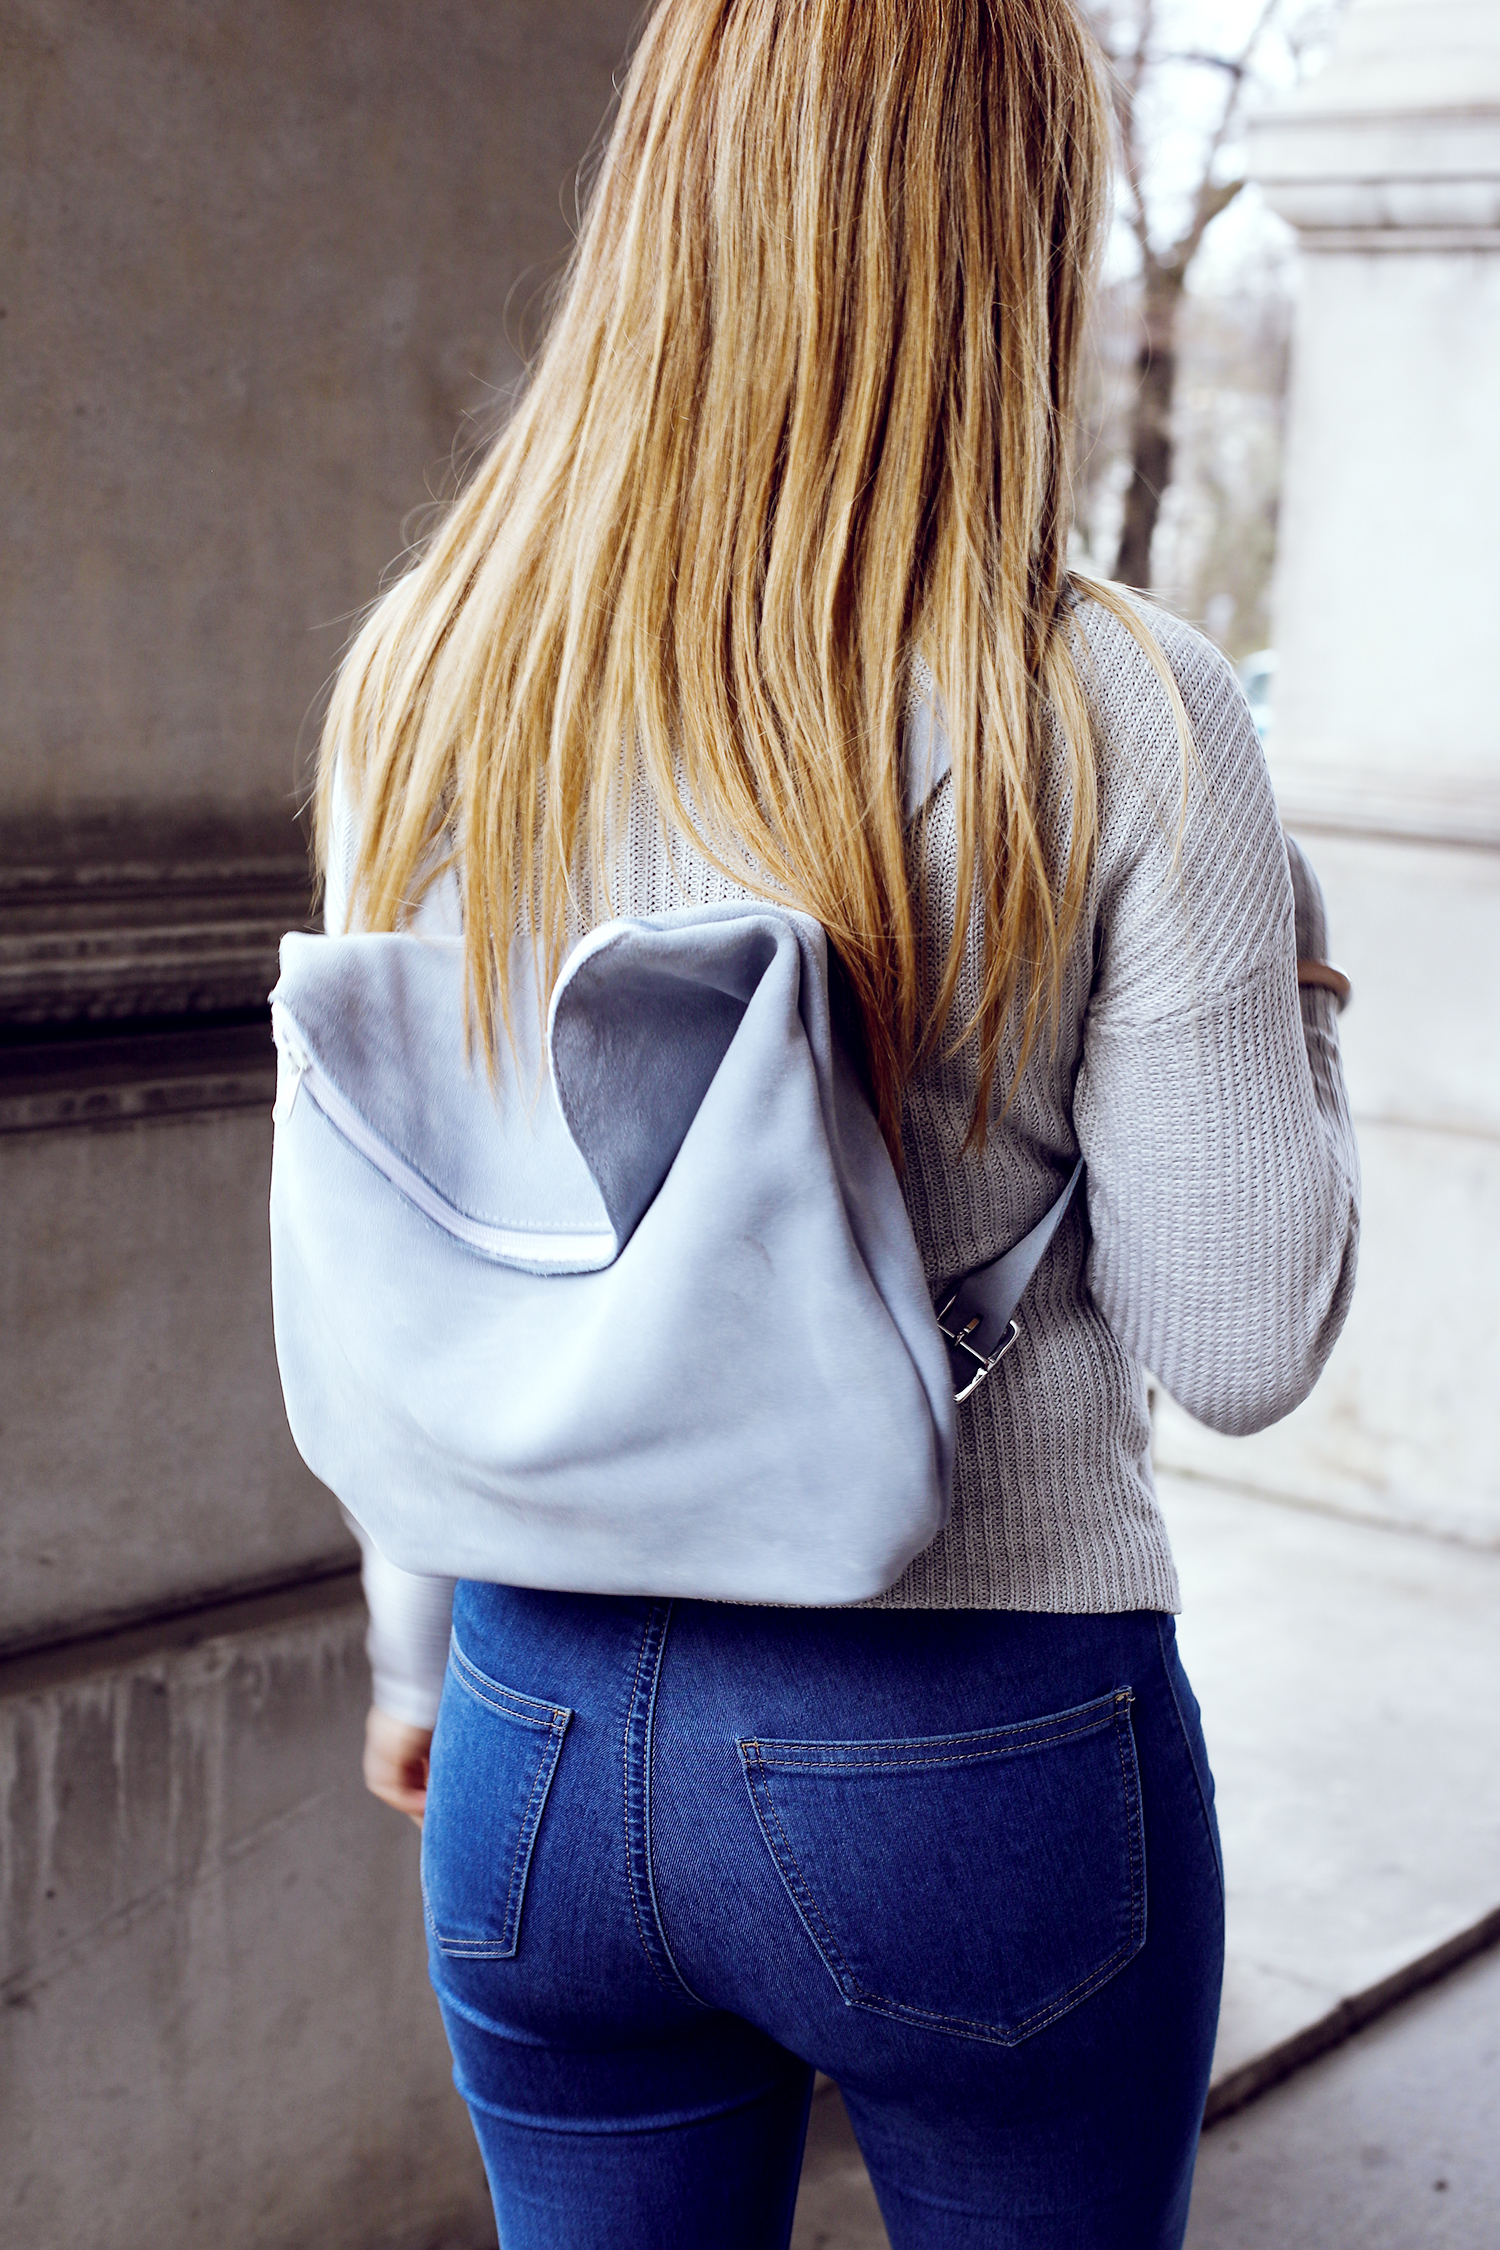 Streetstyle_Studio_Dai_Backpack_German_Fashion_Blog_Style_Roulette